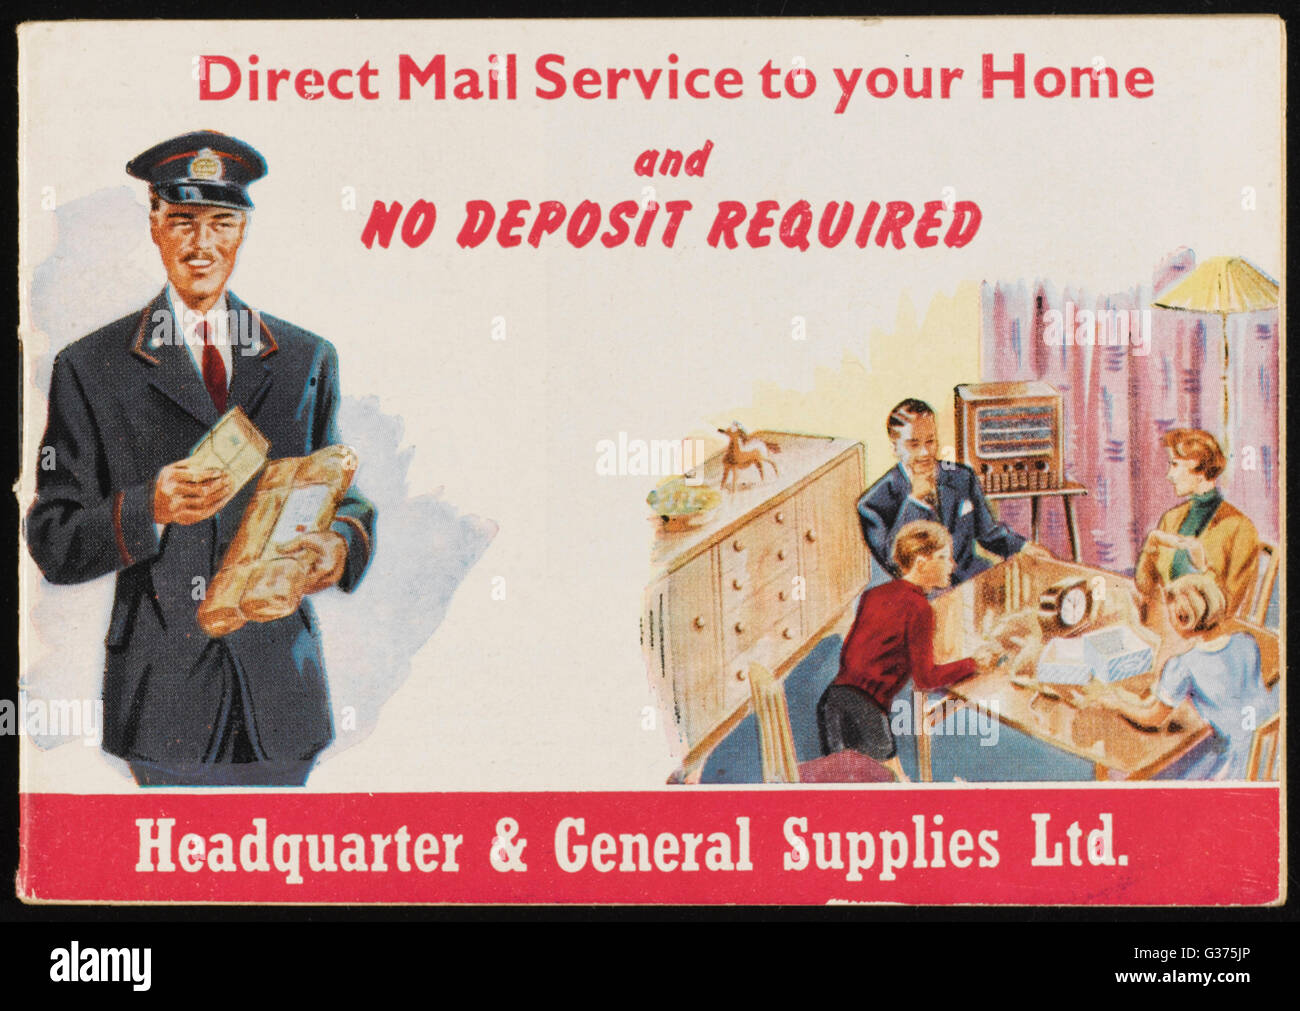 Direct Mail Service to your Home - clothing tableware and household goods from Headquarters u0026 General Supplies. Date circa 1950  sc 1 st  Alamy & Direct Mail Service to your Home - clothing tableware and Stock ...